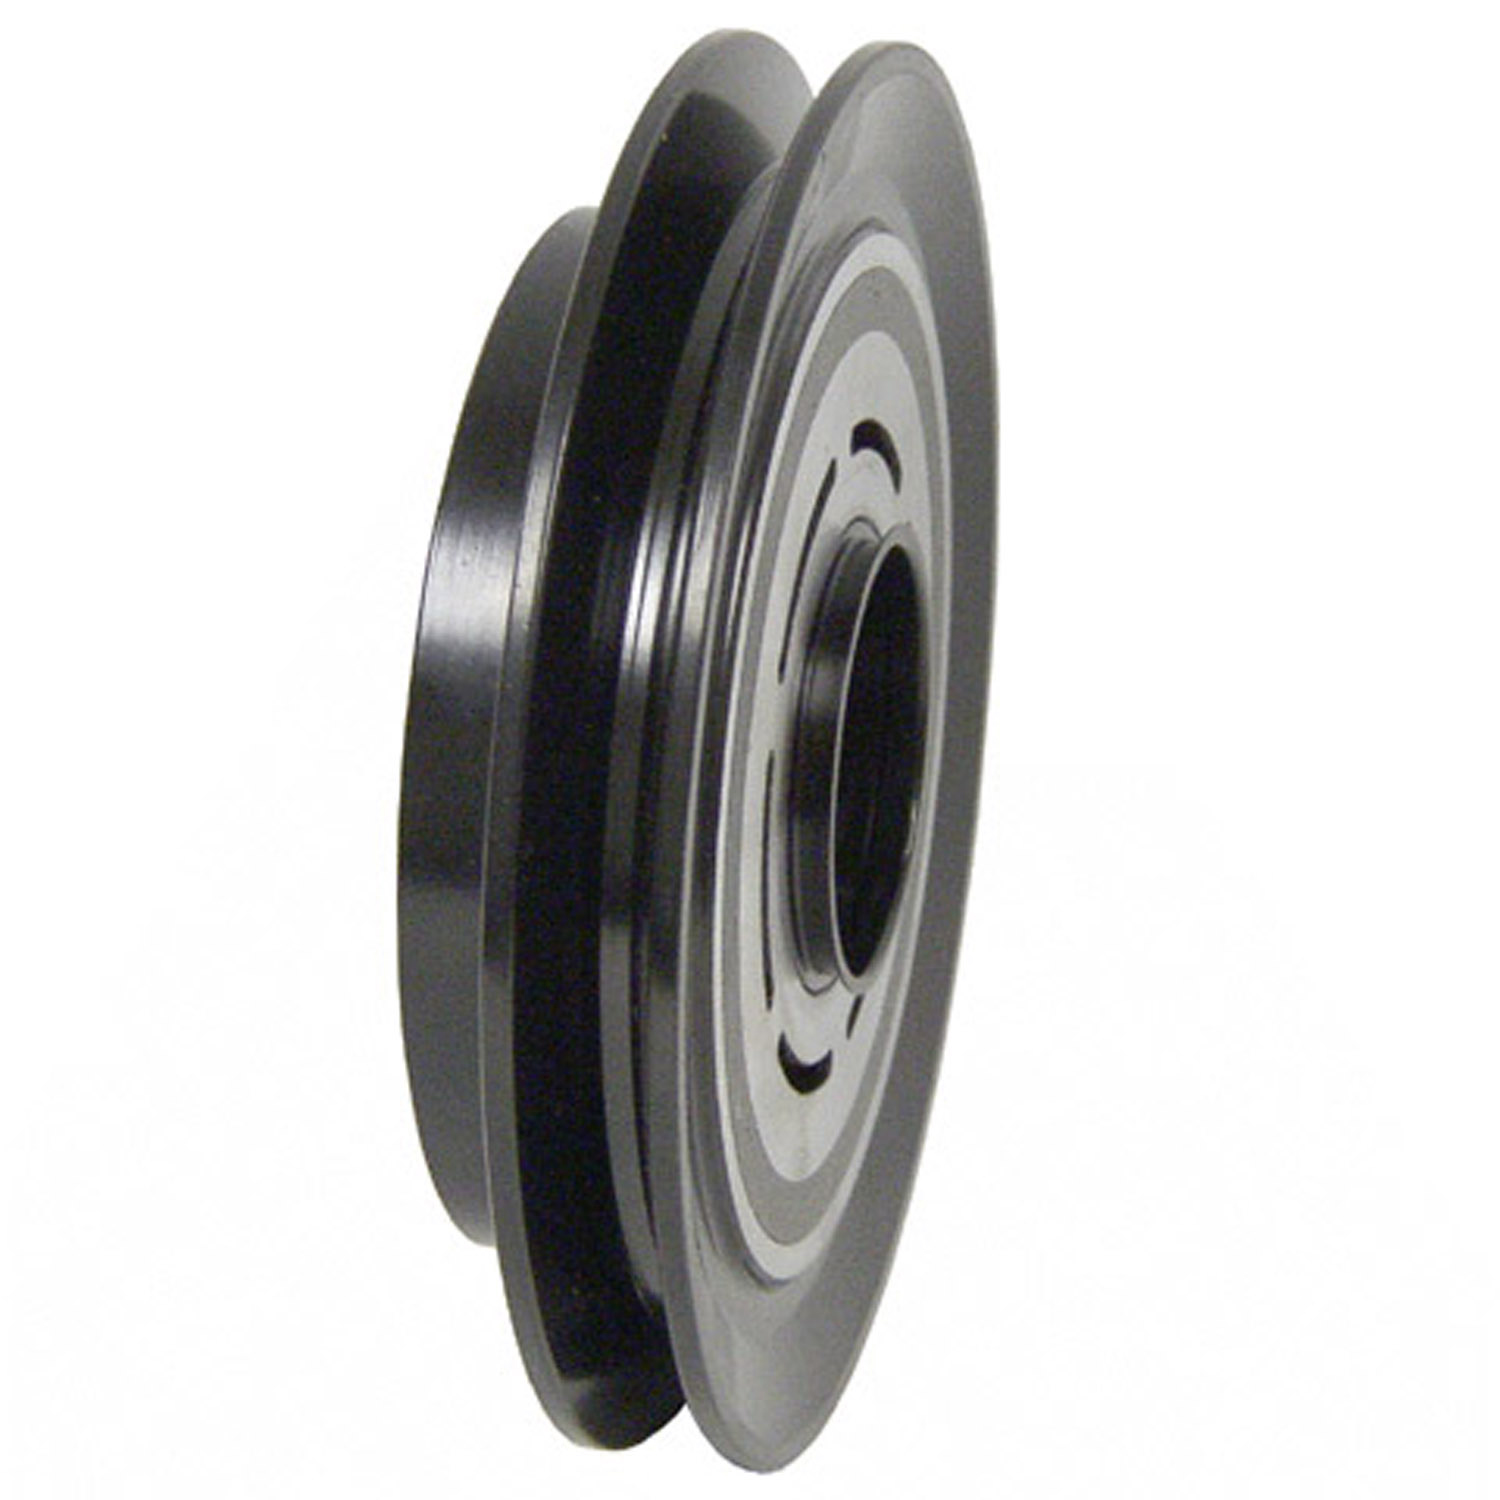 Clutch Pulley PULLEY FOR CL 1611C